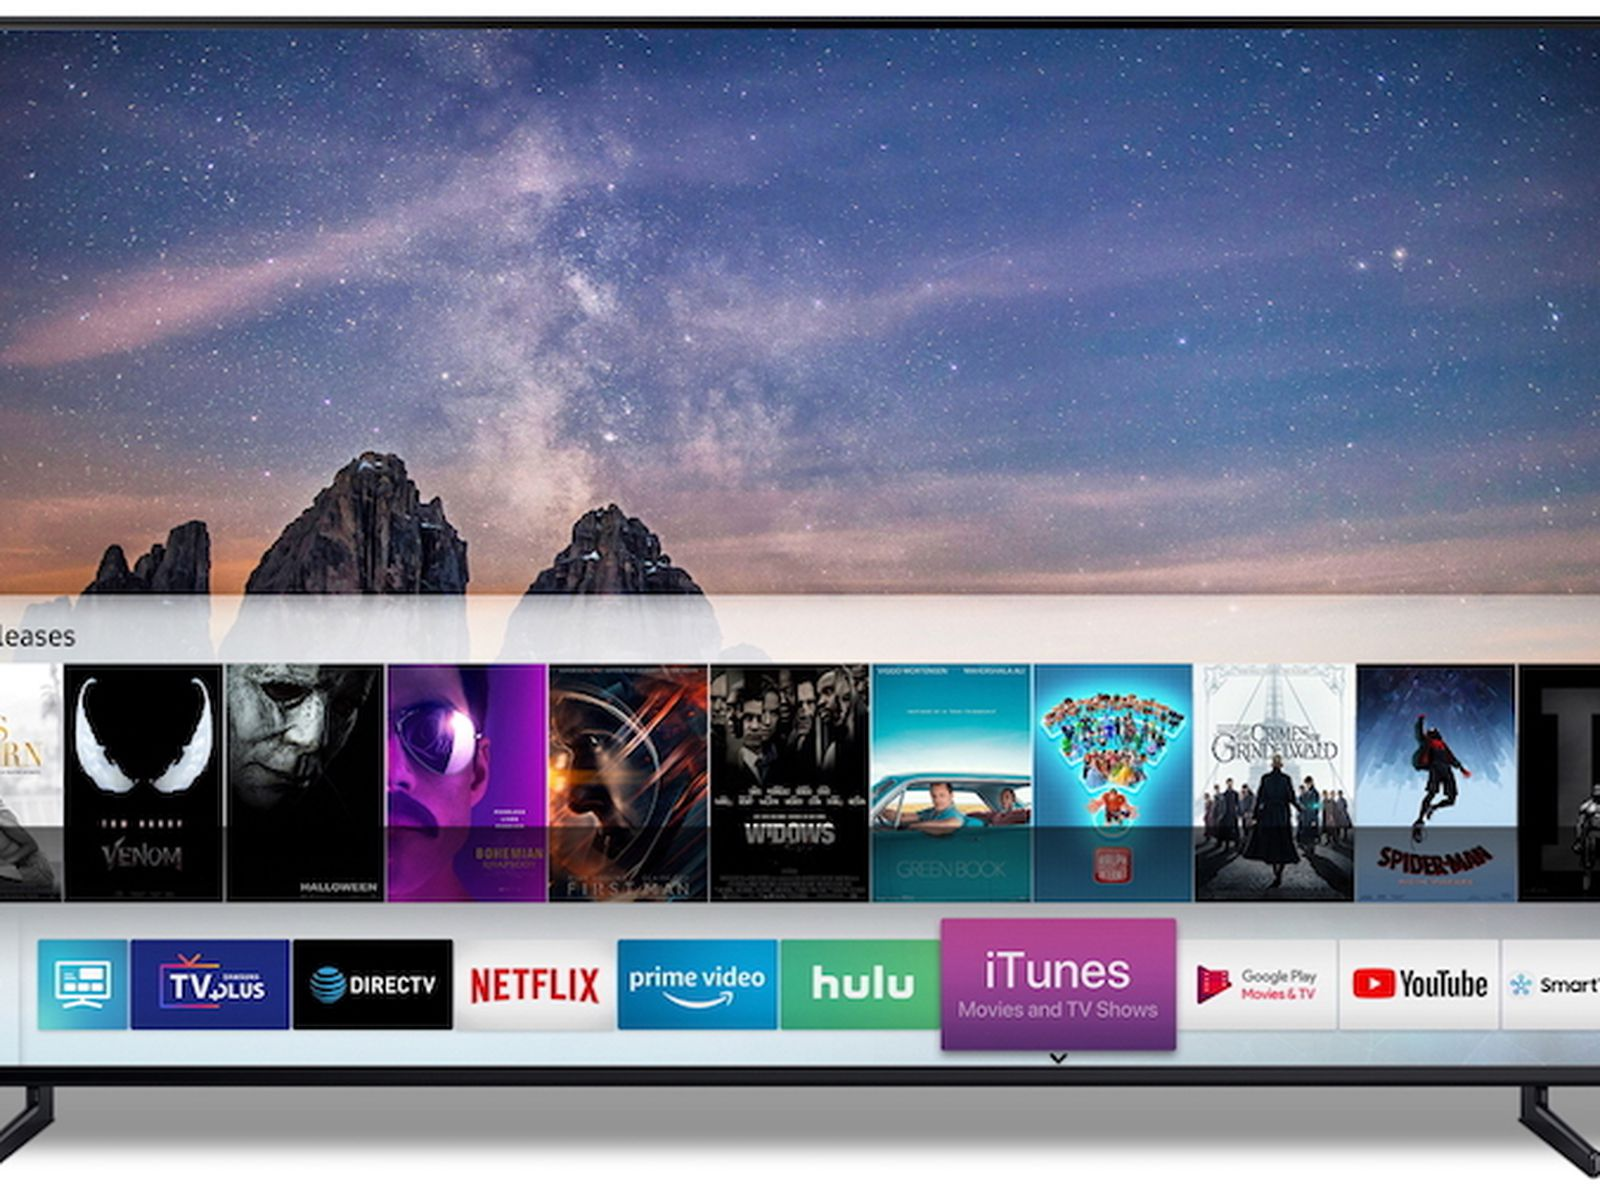 Apple Shares List of AirPlay 2-Enabled Smart TVs From Samsung, LG, Sony,  and Vizio - MacRumors